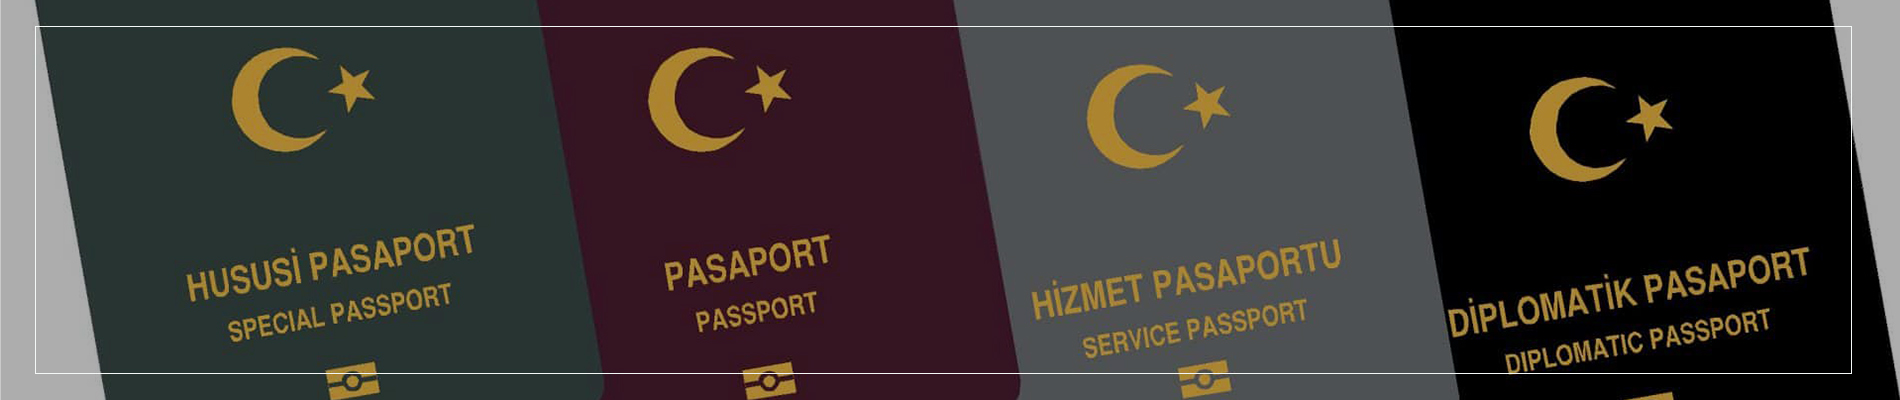 Turkish Passport Types